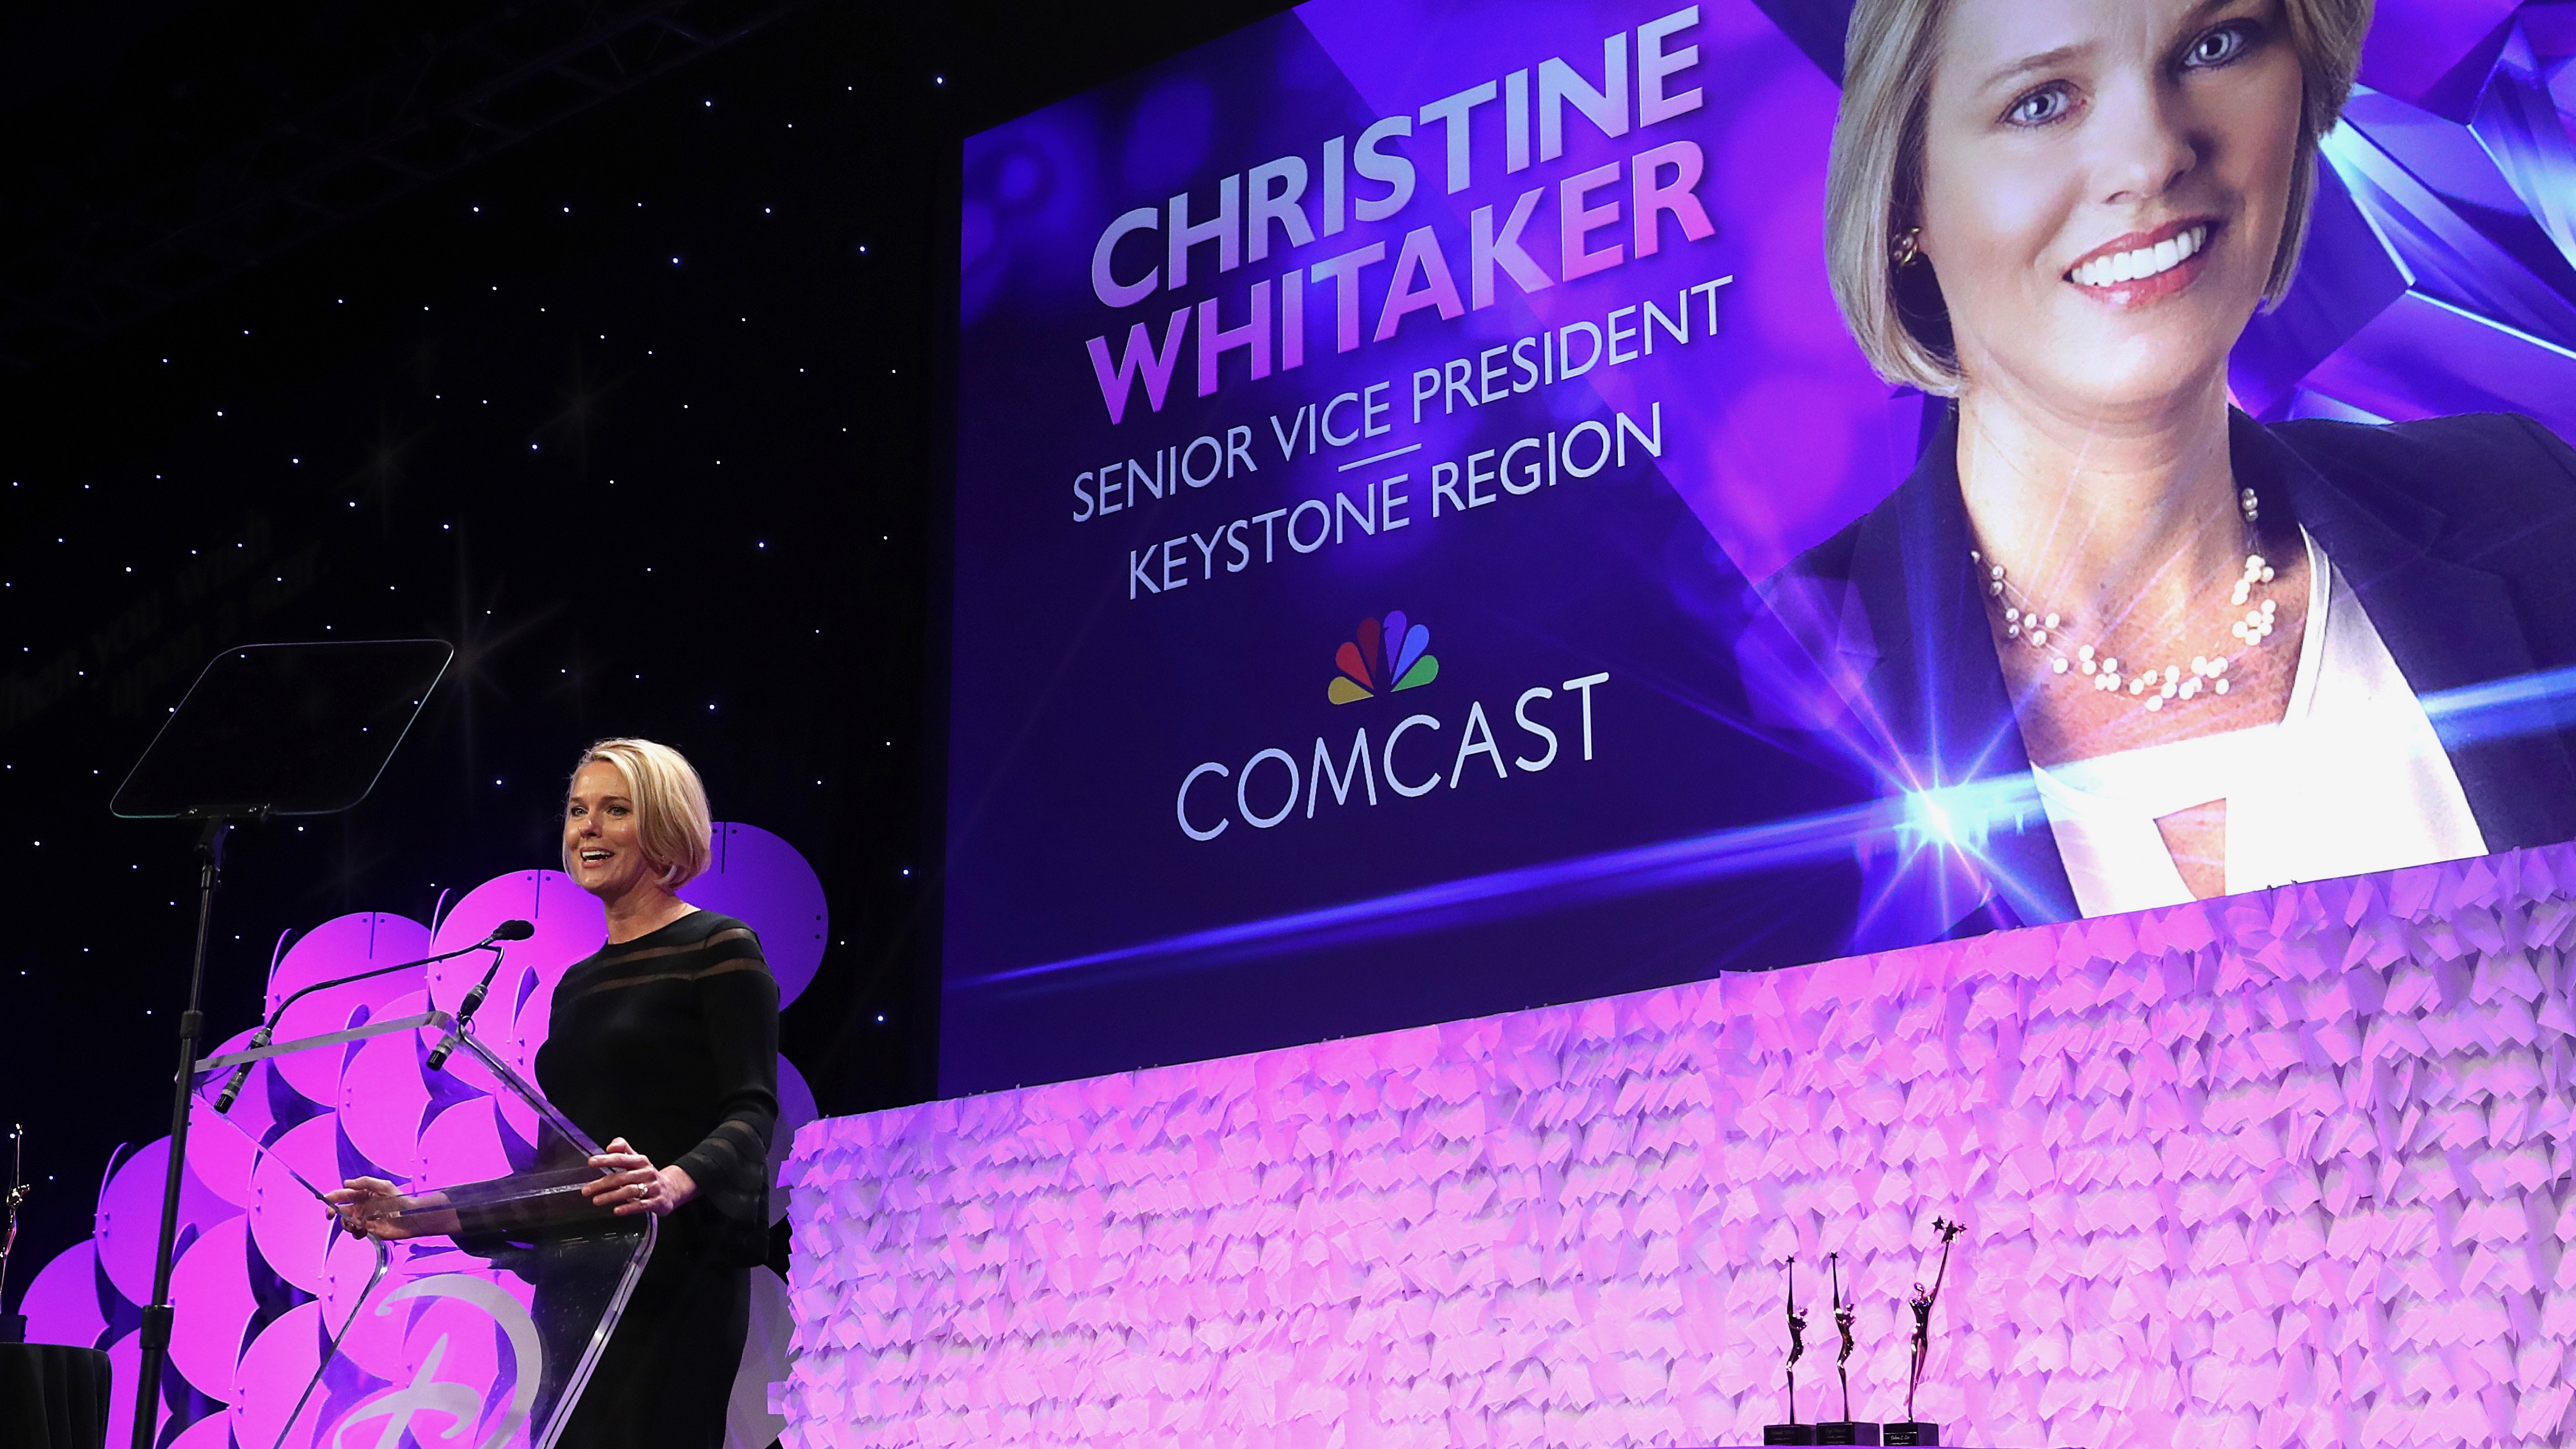 Comcast woman speaking to a crowd